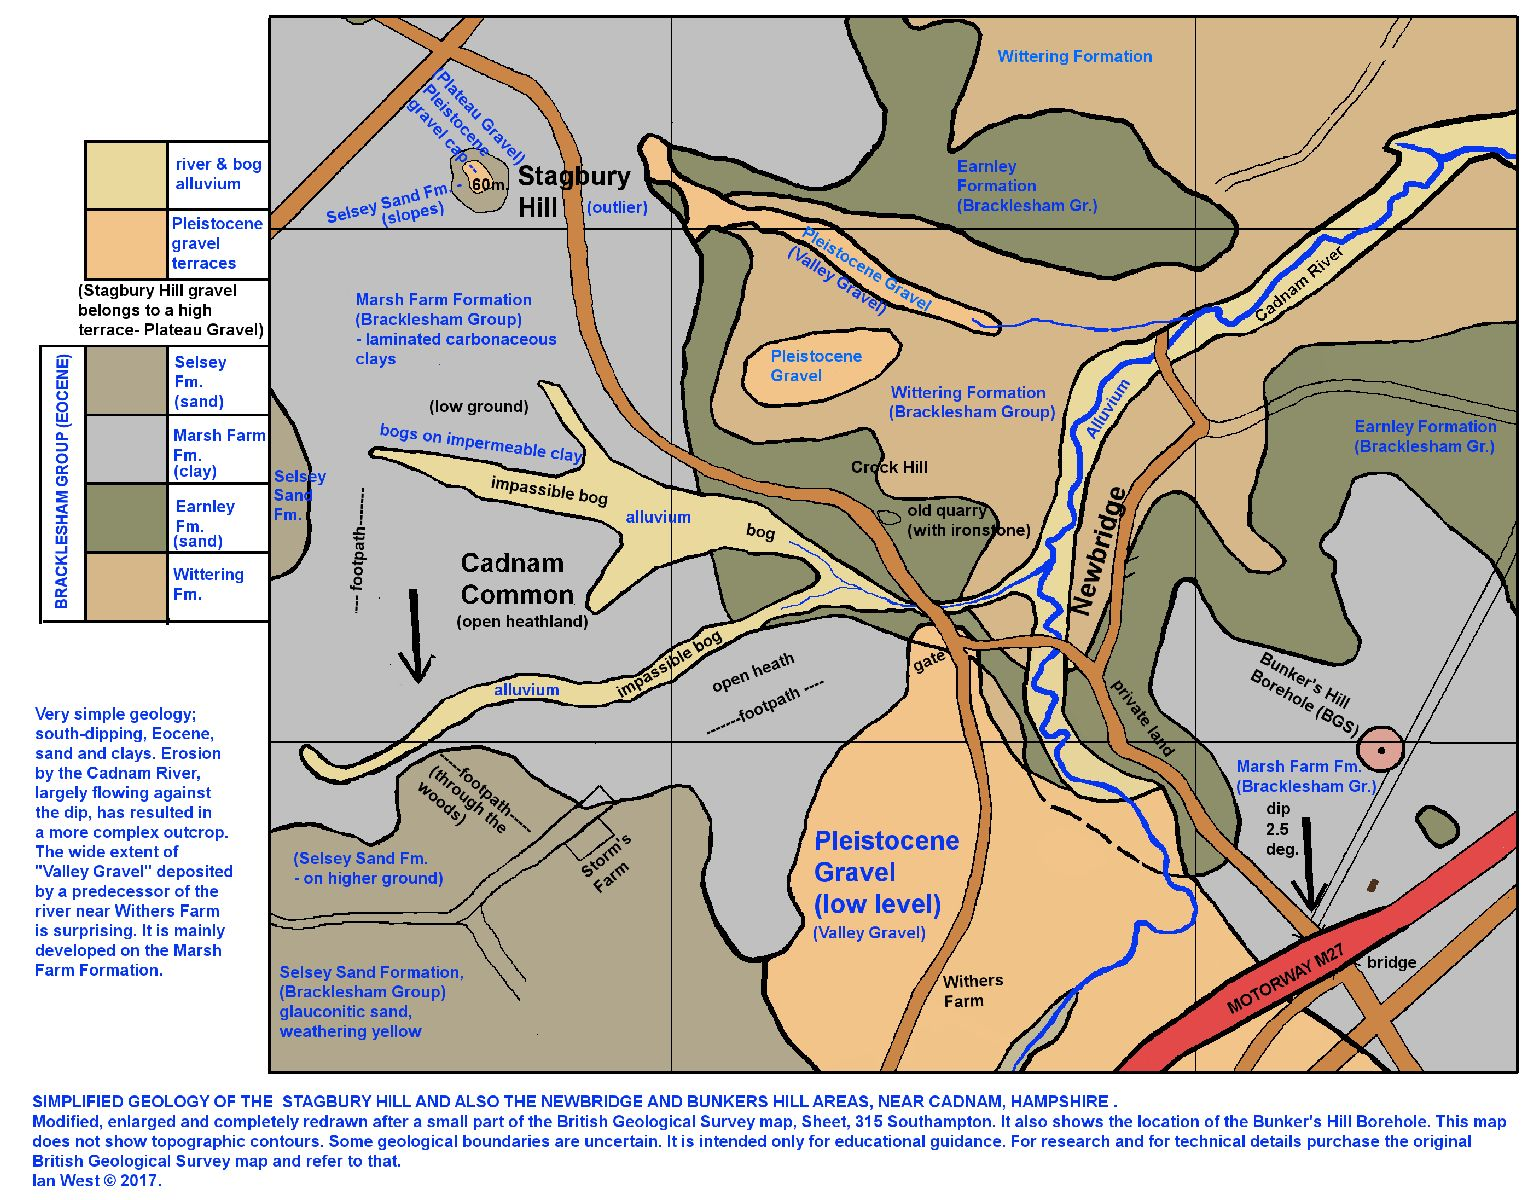 A simplified geological map of the area around Stagbury Hill and Newbridge, Cadnam area, New Forest, southern England